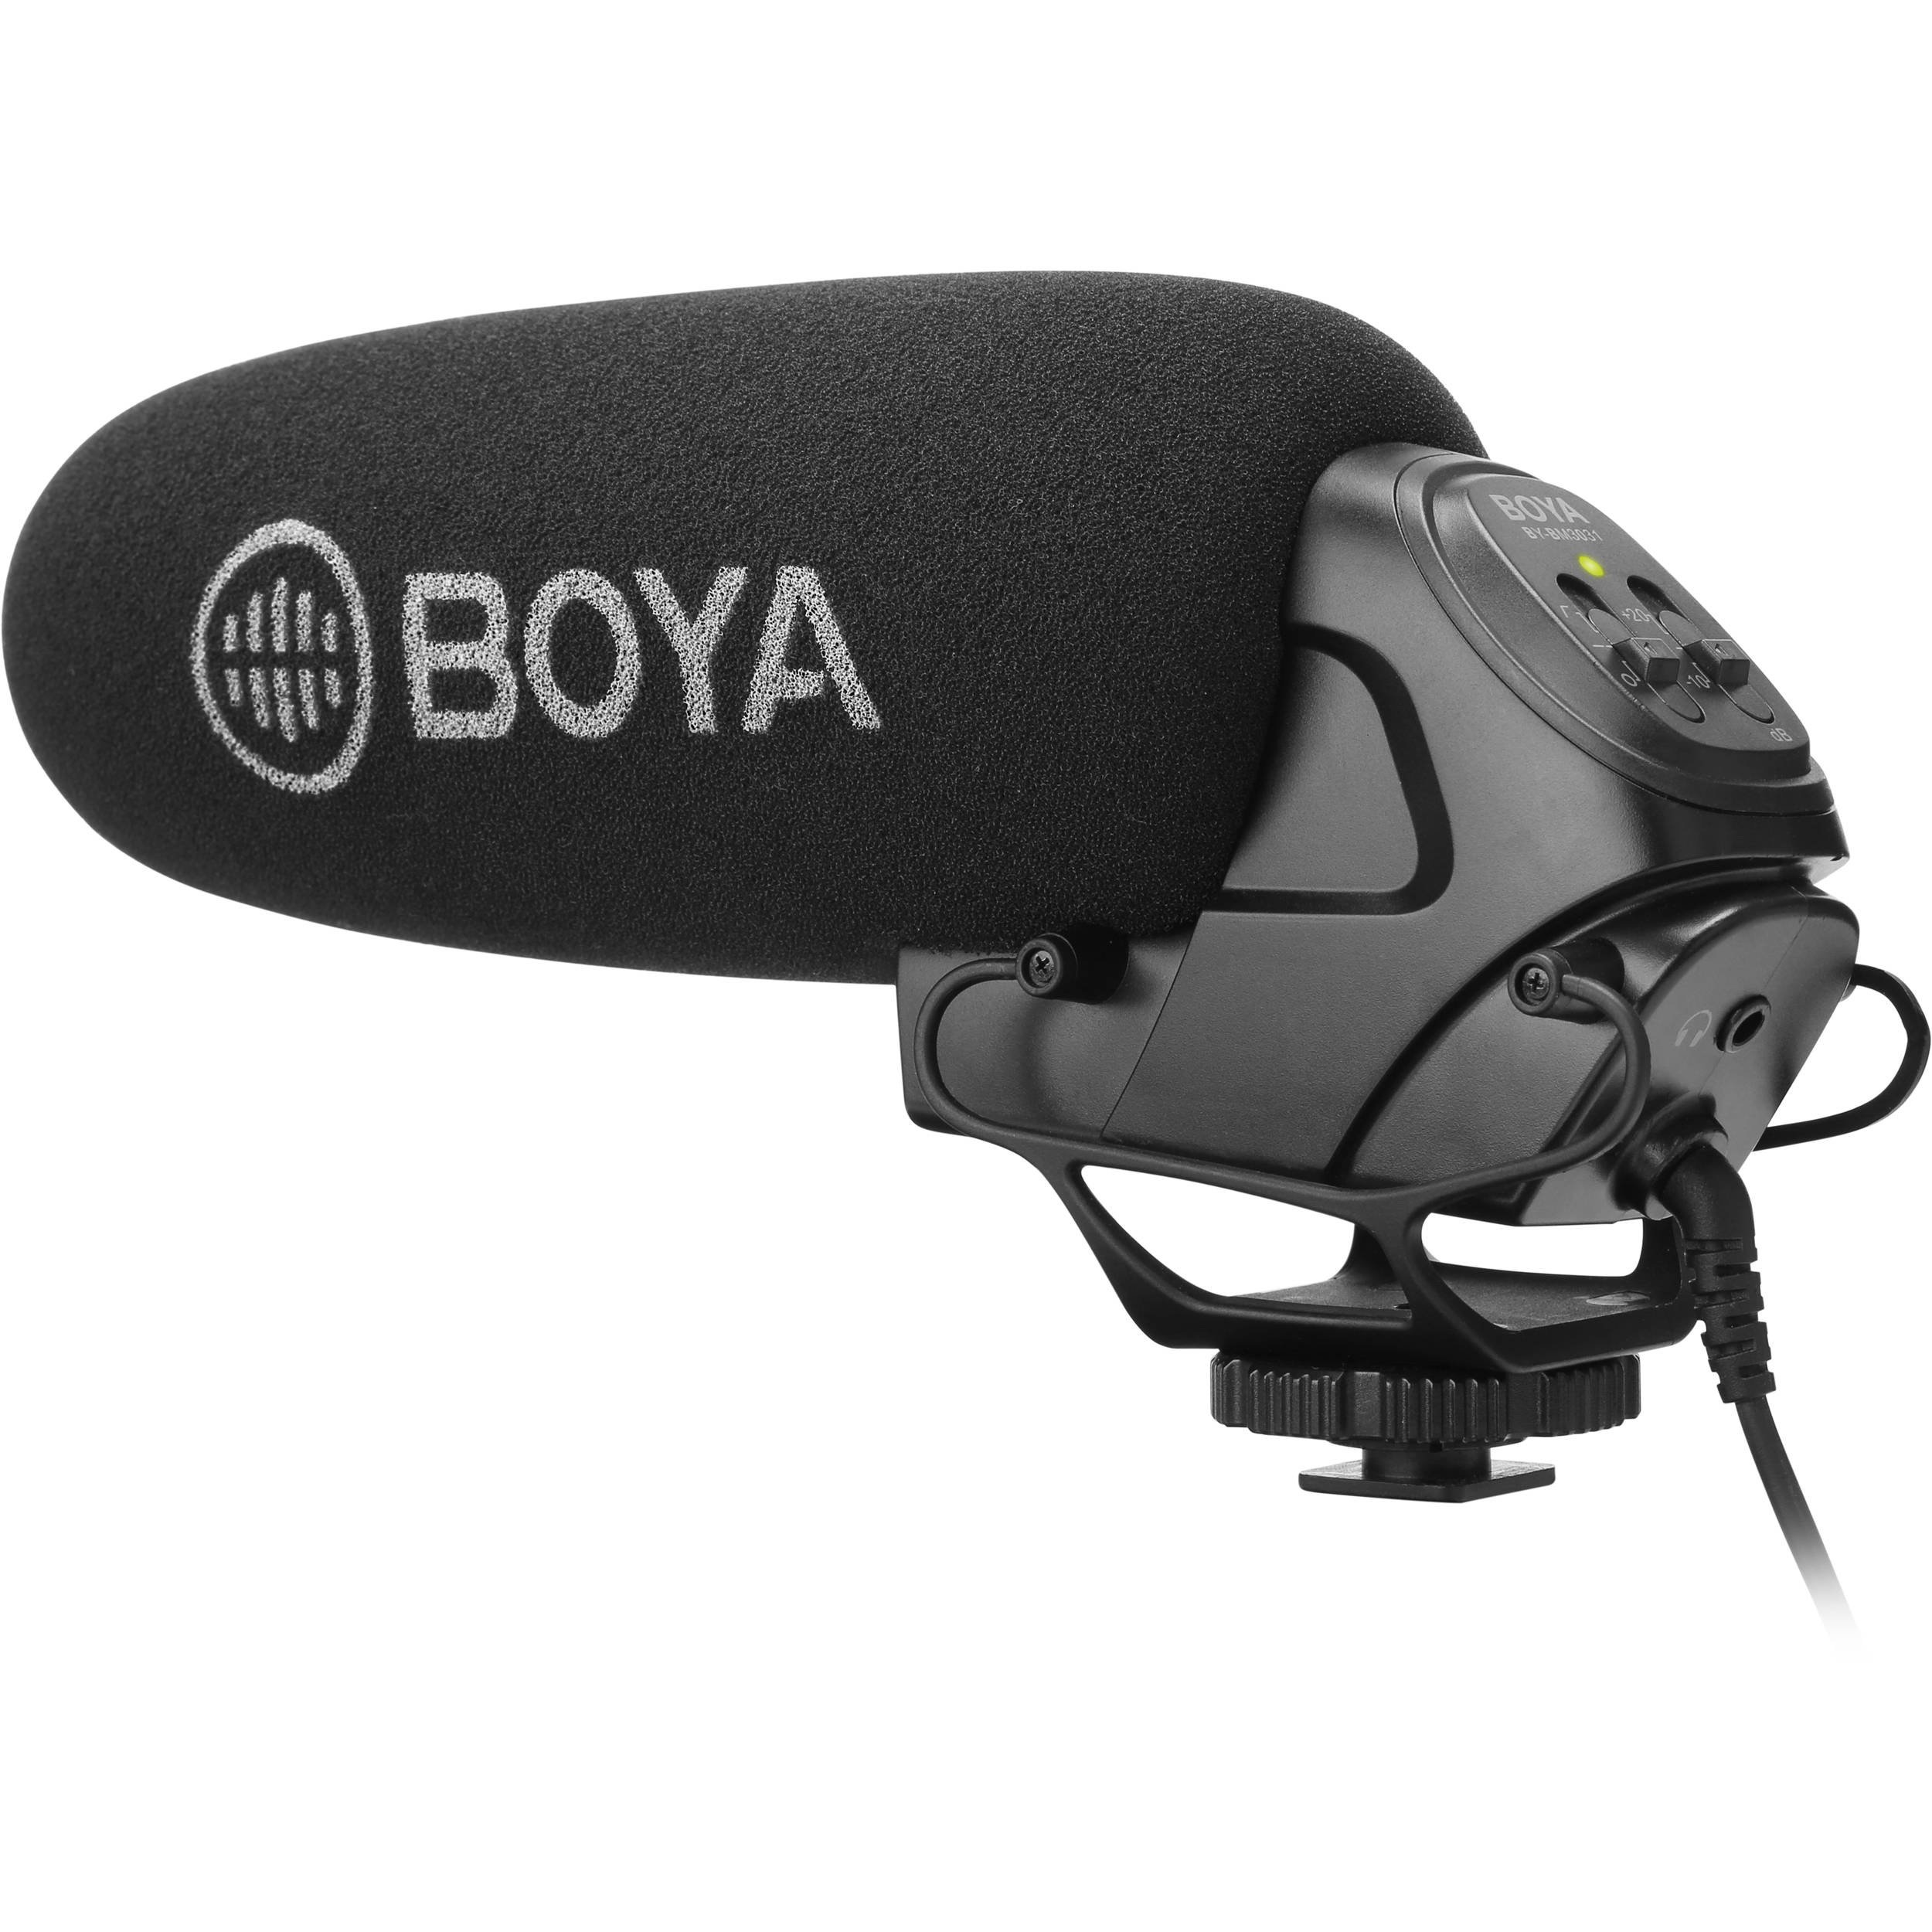 Boya By Bm3031 On Camera Supercardioid Shotgun By Bm3031 Bh